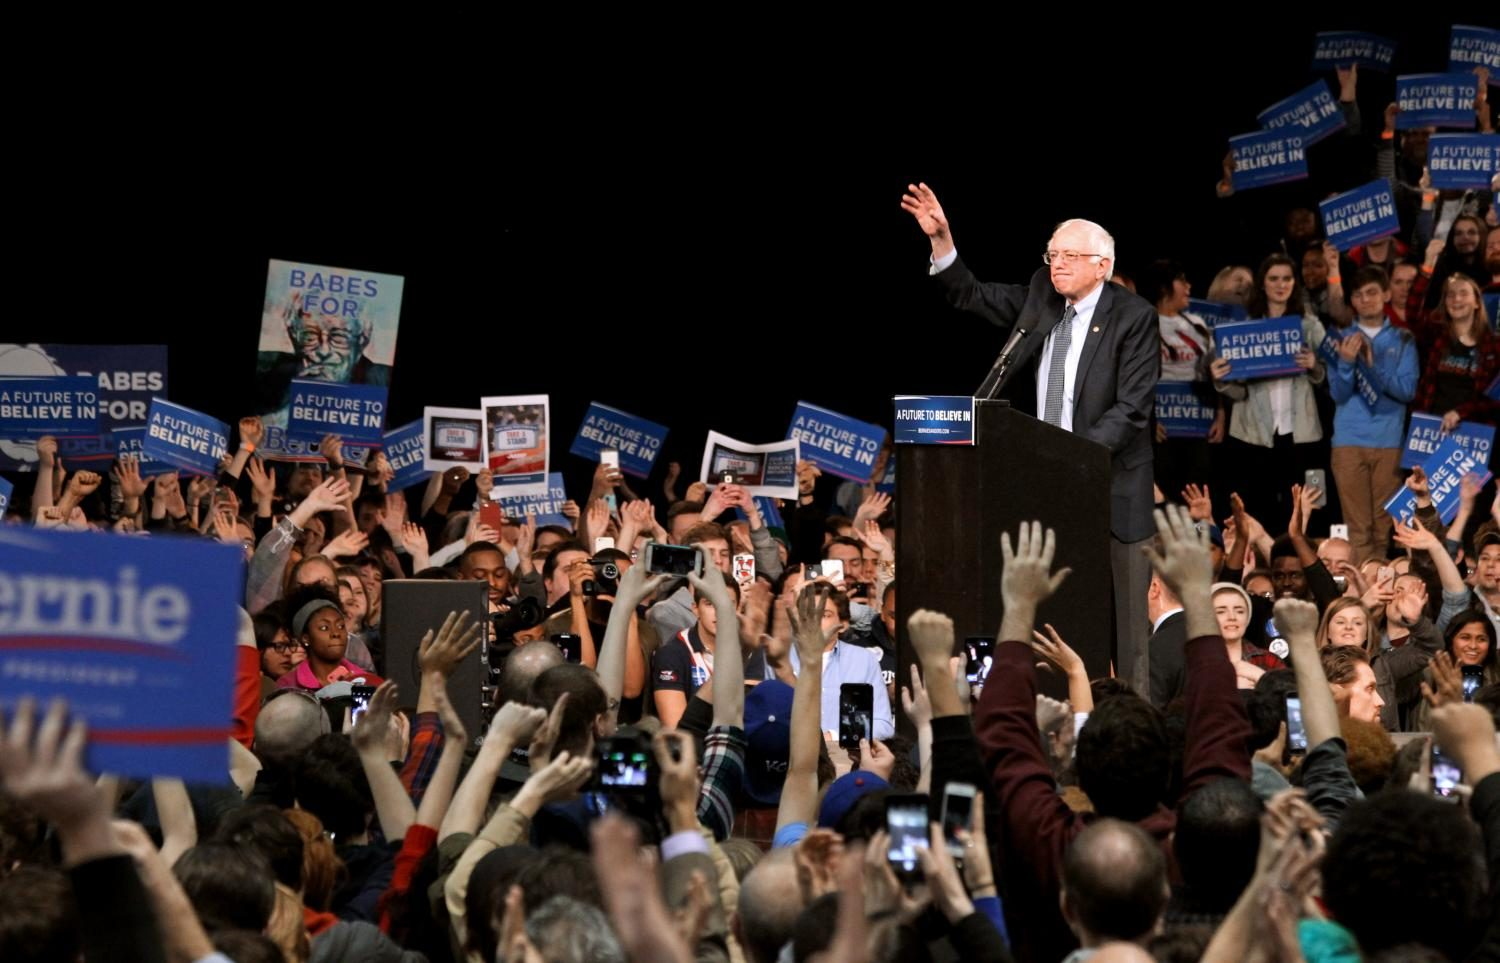 Democratic presidential candidate Bernie Sanders receives cheers from the audience at the end of his rally on Feb. 24, 2016, at the Kansas City Convention Center. Even though he didn't go on to become the Democratic party nominee, photographing a presidential candidate's rally was a fascinating experience.